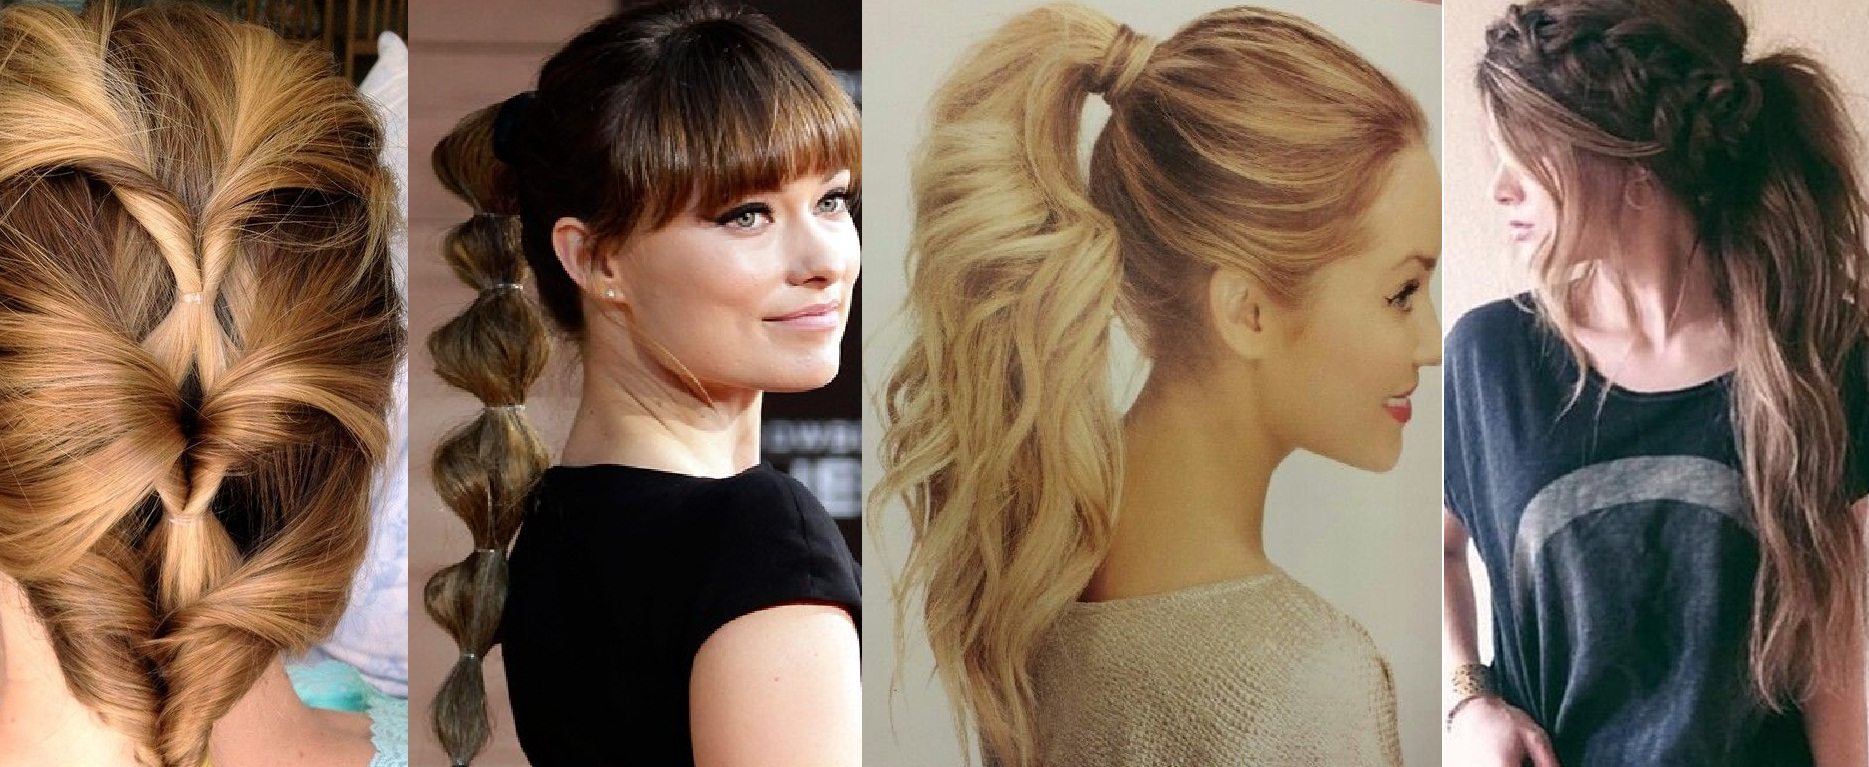 Best Ponytail hairstyles for women for all hair types